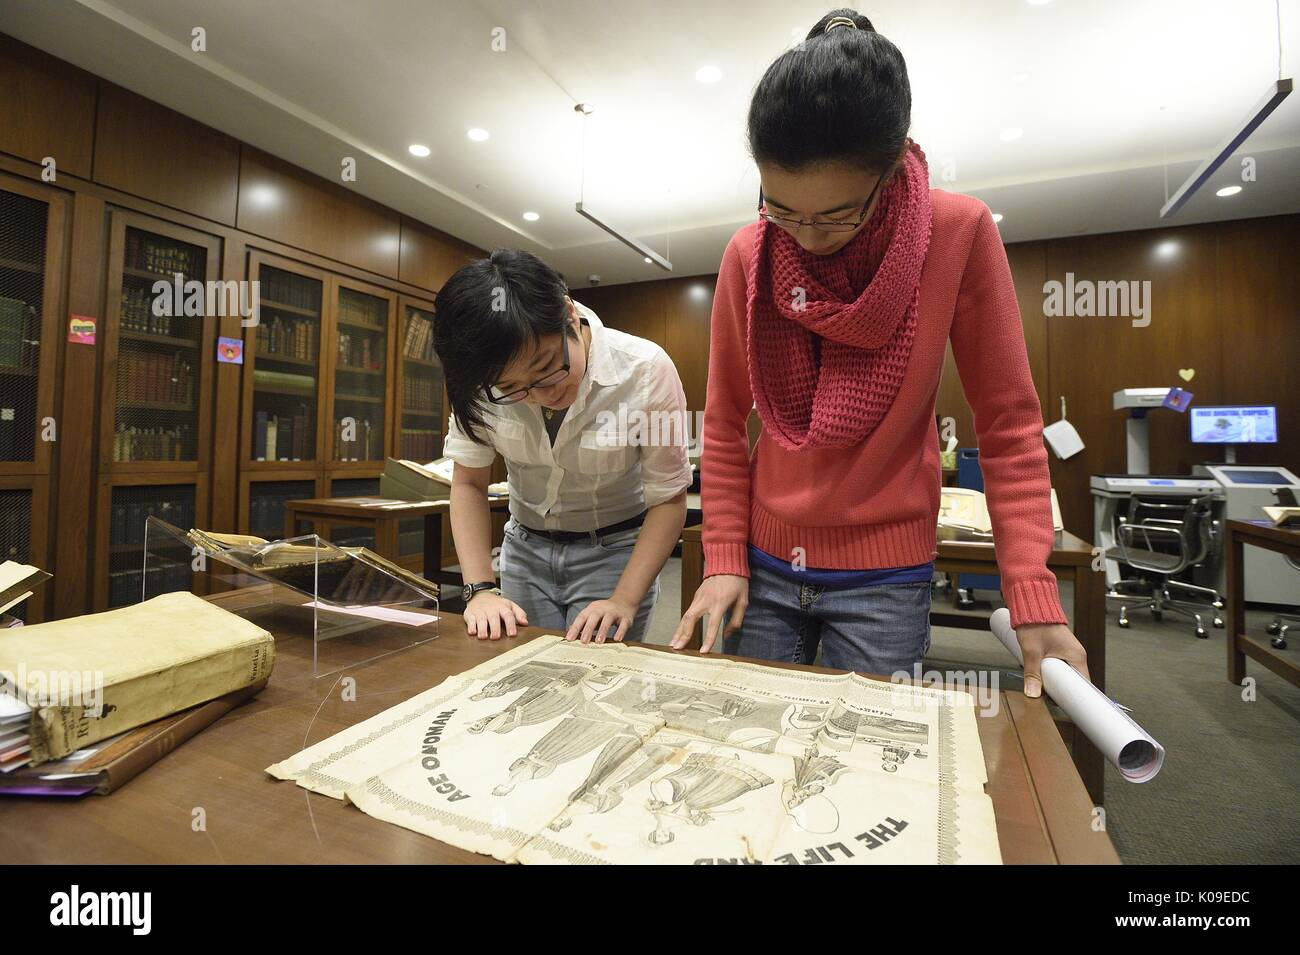 Two female college students are looking down at a large illustration artifact at the library event called Dirty Books and Longing Looks, February 11, 2016. - Stock Image